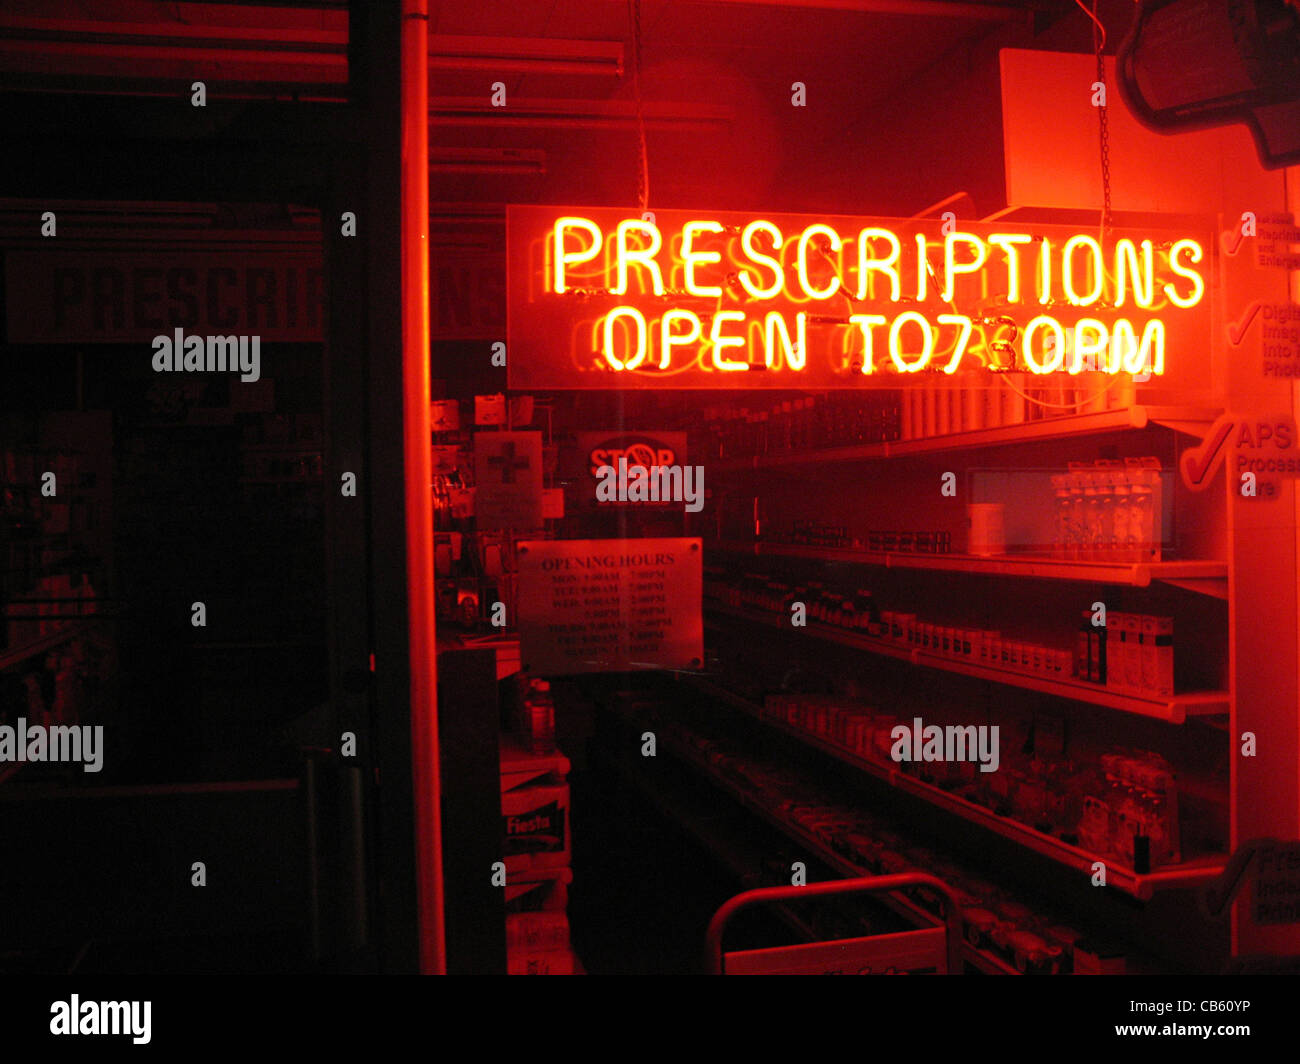 Open window at night - Chemist Shop Window At Night With A Glowing Red Neon Sign Saying Prescriptions And Giving The Store Opening Times